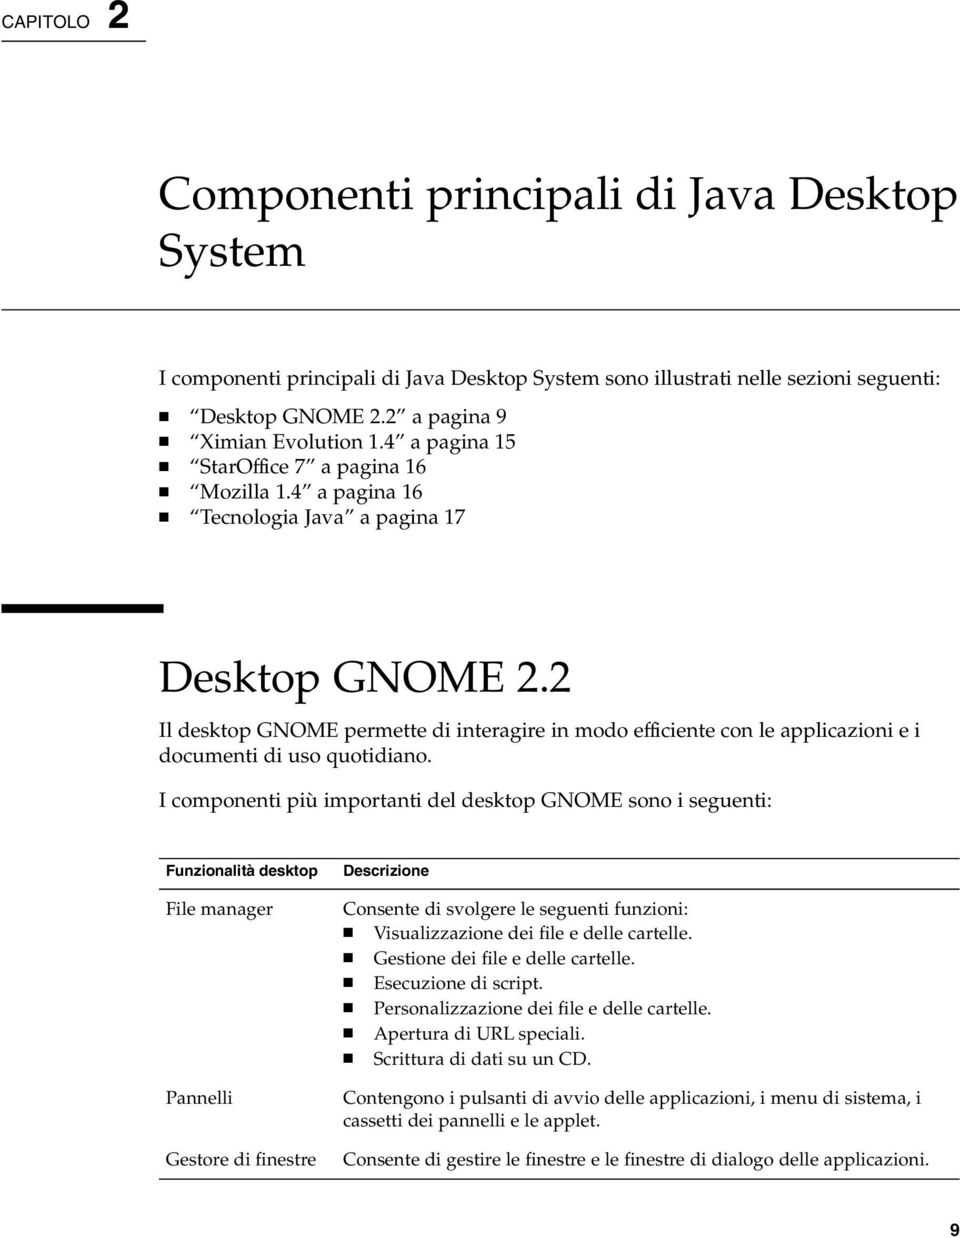 2 Il desktop GNOME permette di interagire in modo efficiente con le applicazioni e i documenti di uso quotidiano.